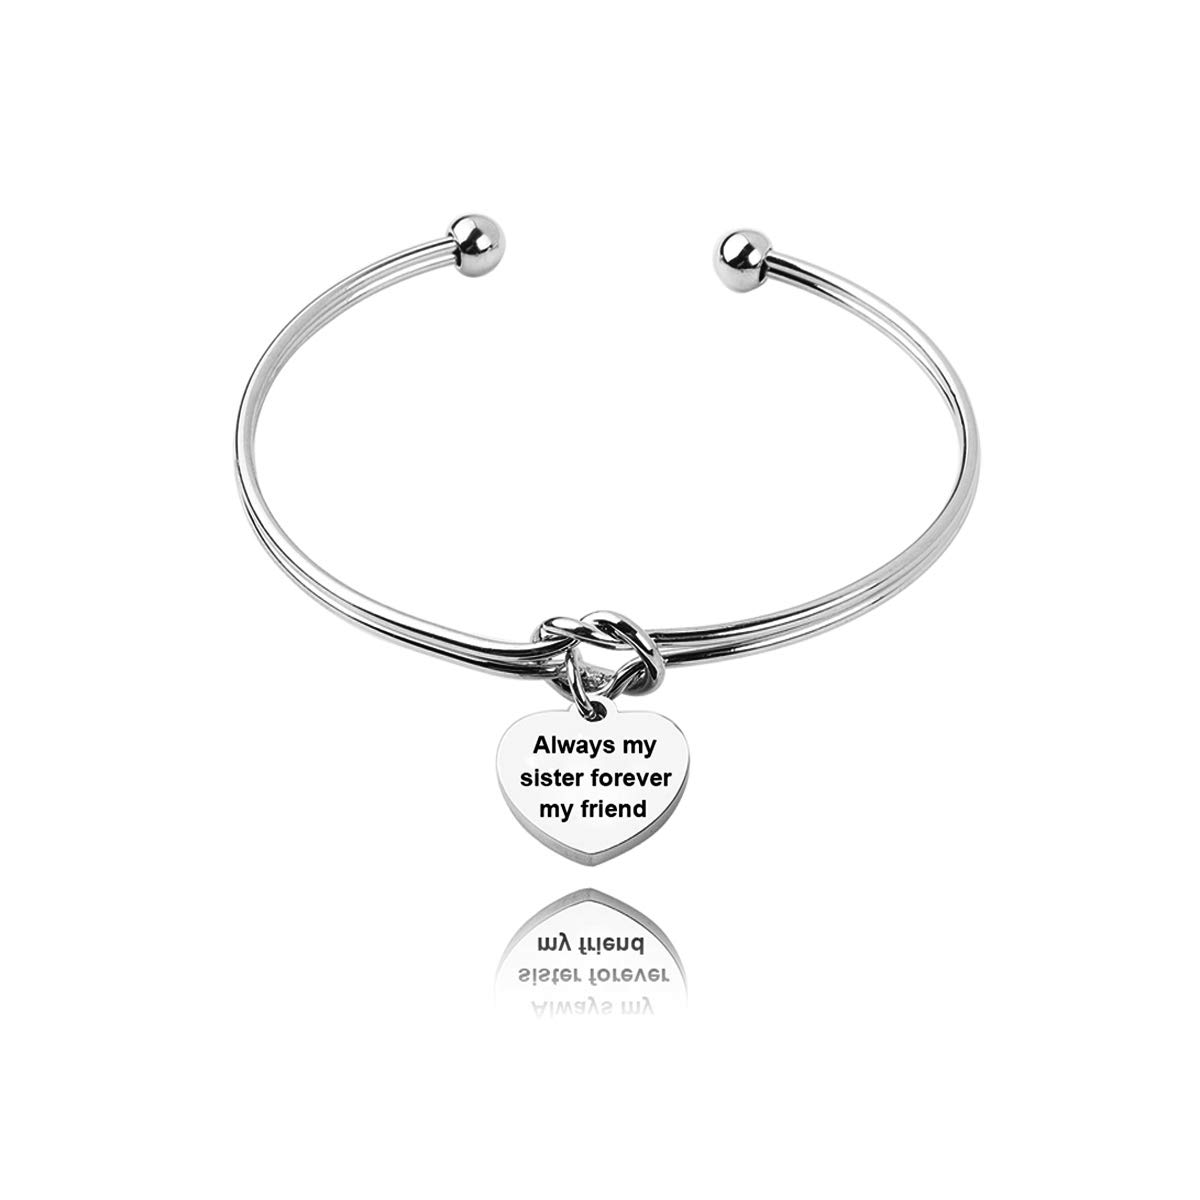 REEBOOOR Tie The Knots Cuff Bracelet Always My Sister, Forever My Friend Inspirational Gift, Women Jewelry, Friendship Gift, Sister Gift (Always My Sister Forever My Friend)